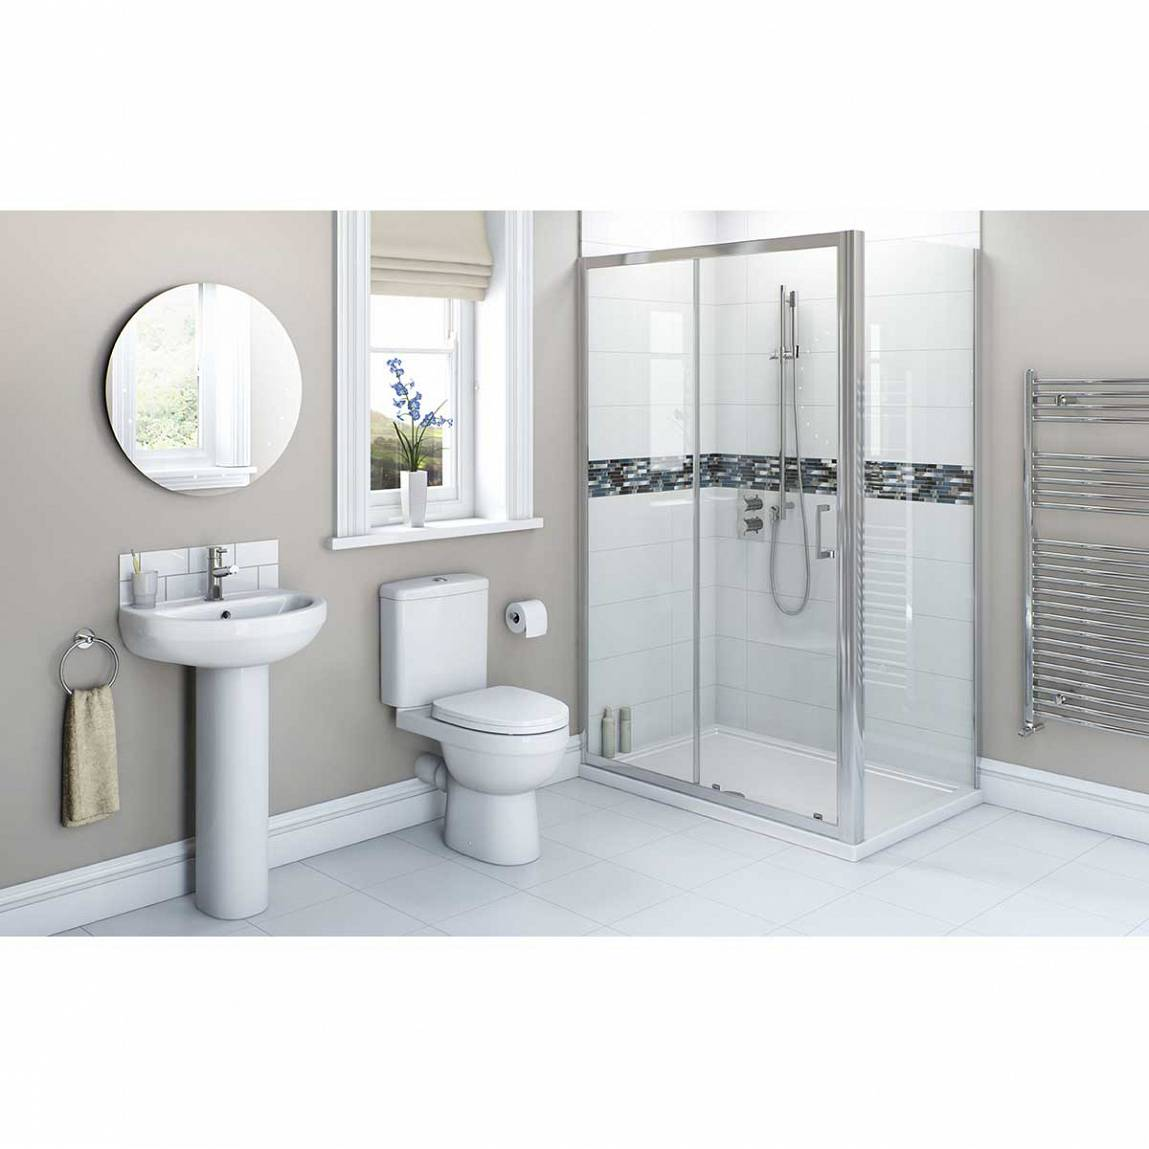 Image of Energy Bathroom set with Sliding Enclosure 1000 x 800